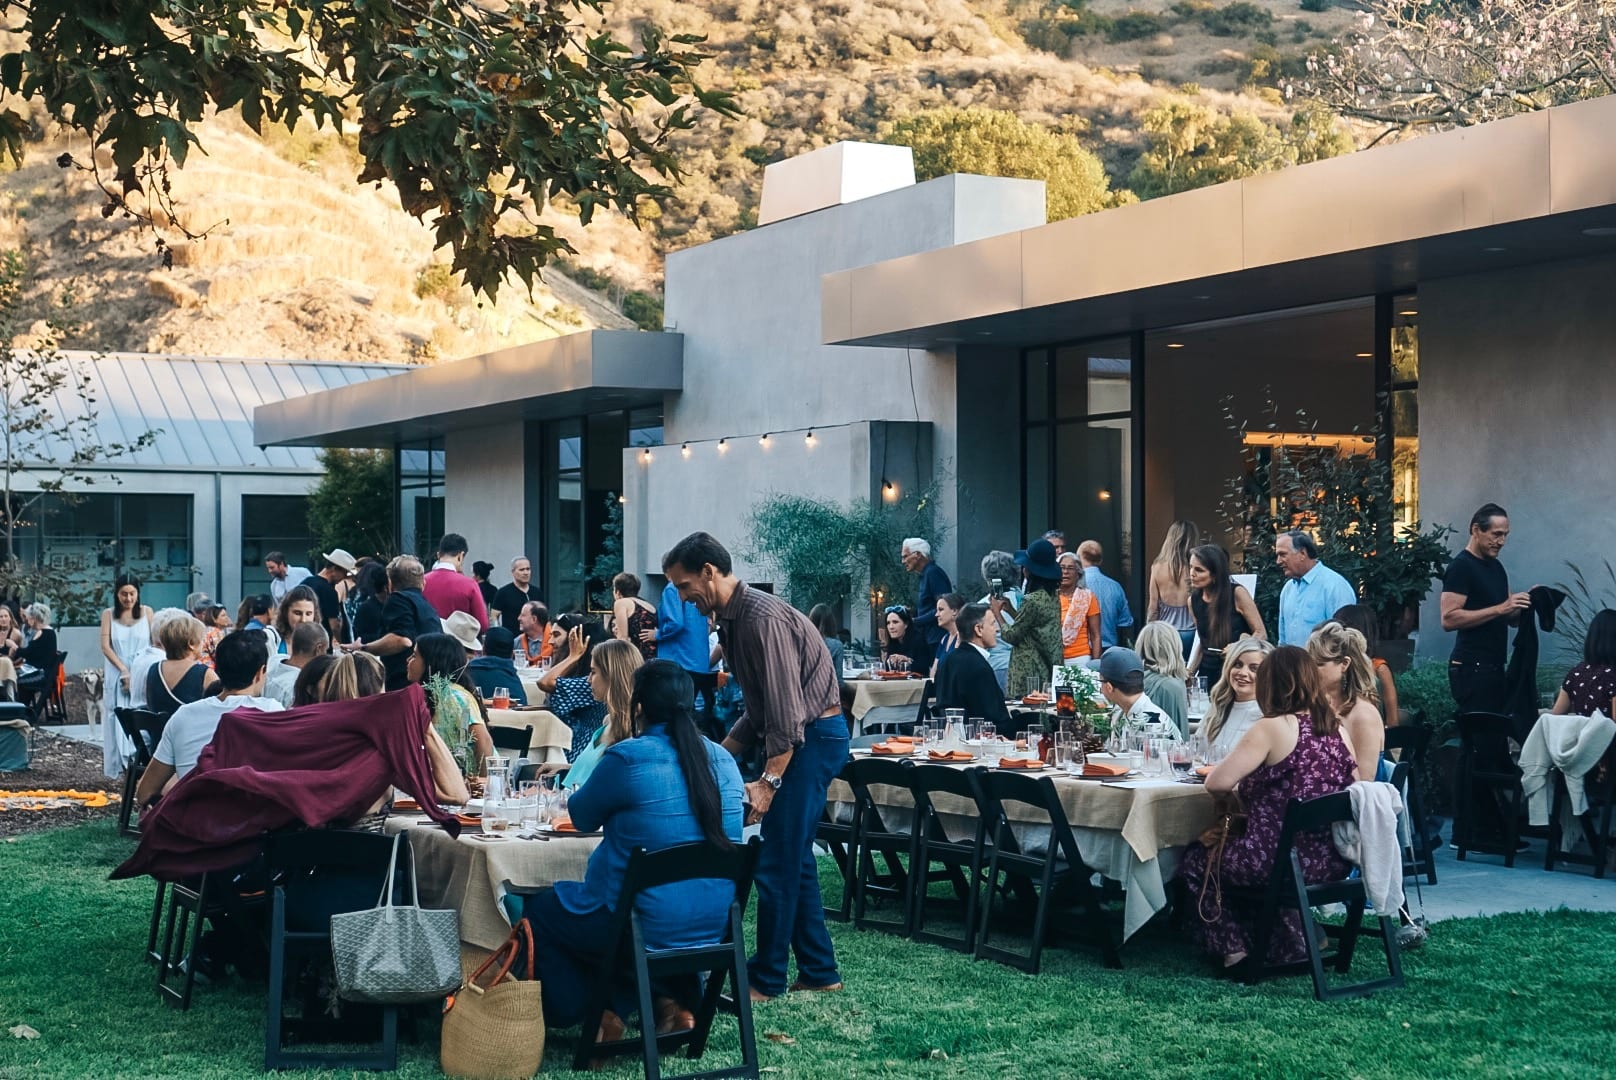 An Italian Themed Dinner Party in the Mountains of Malibu